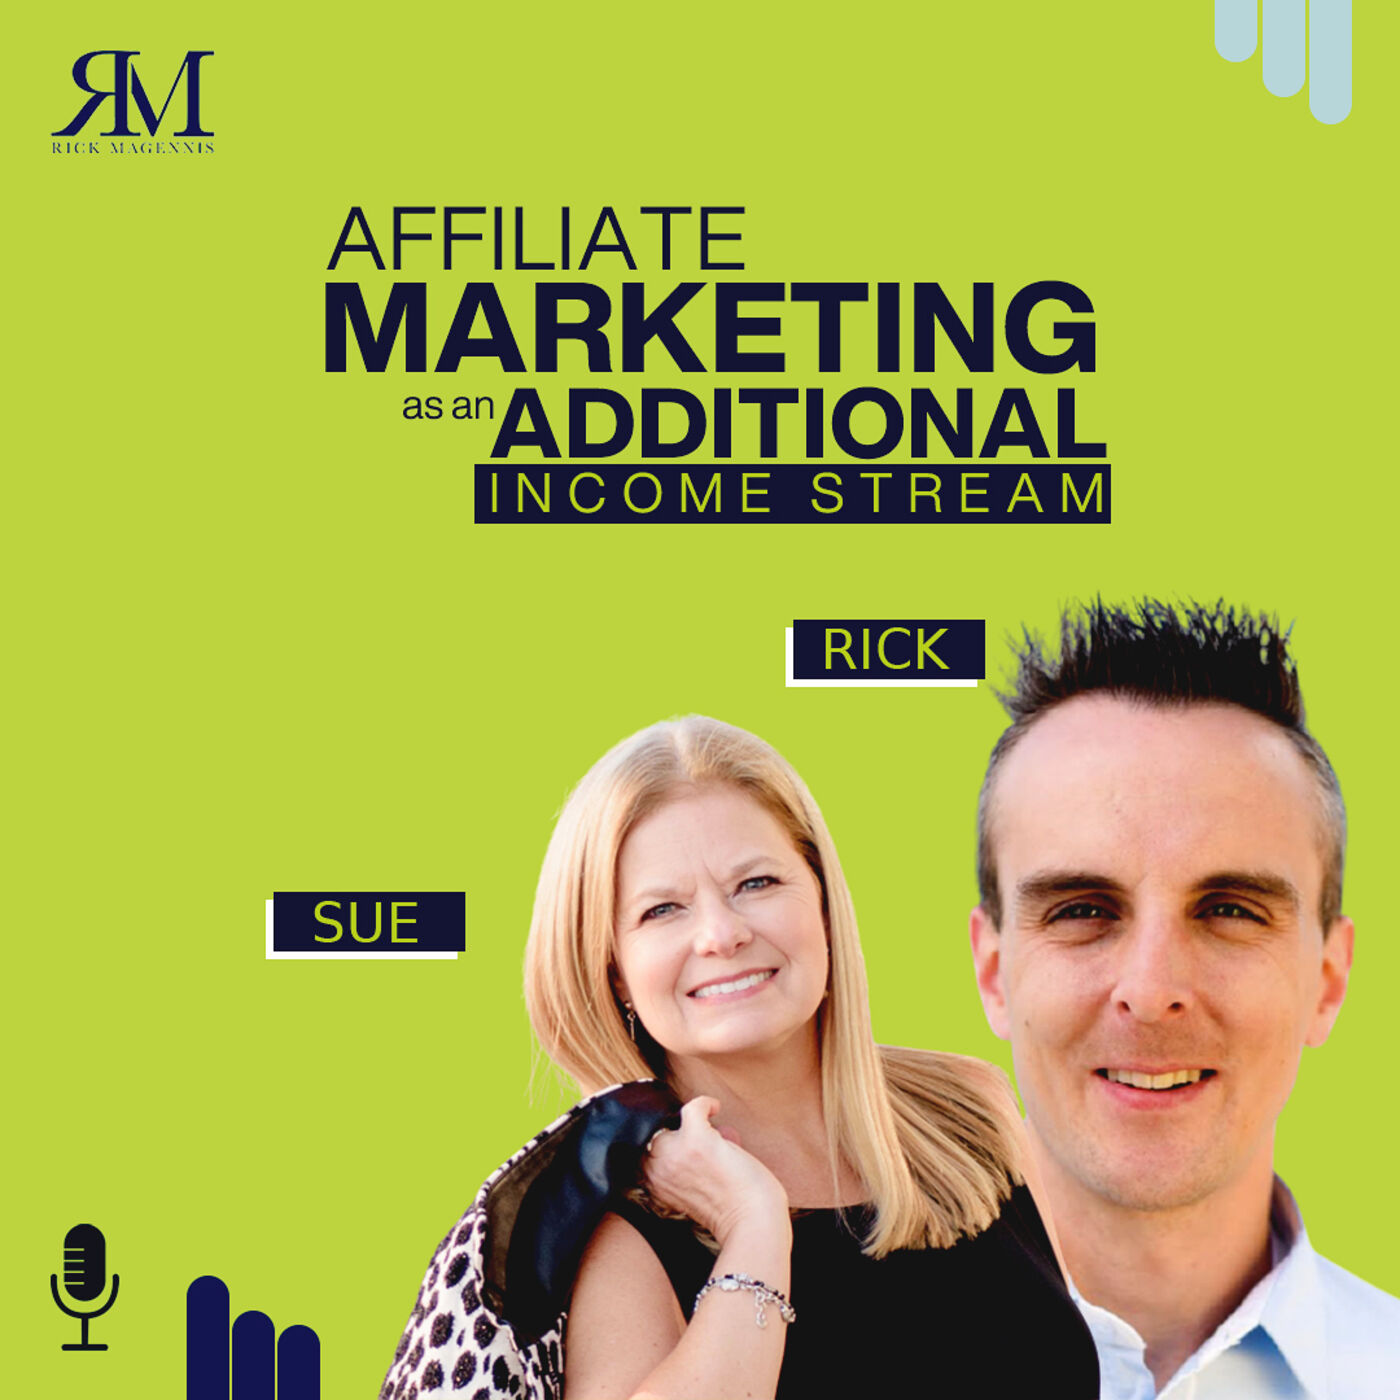 Affiliate Marketing as an Additional Income Stream